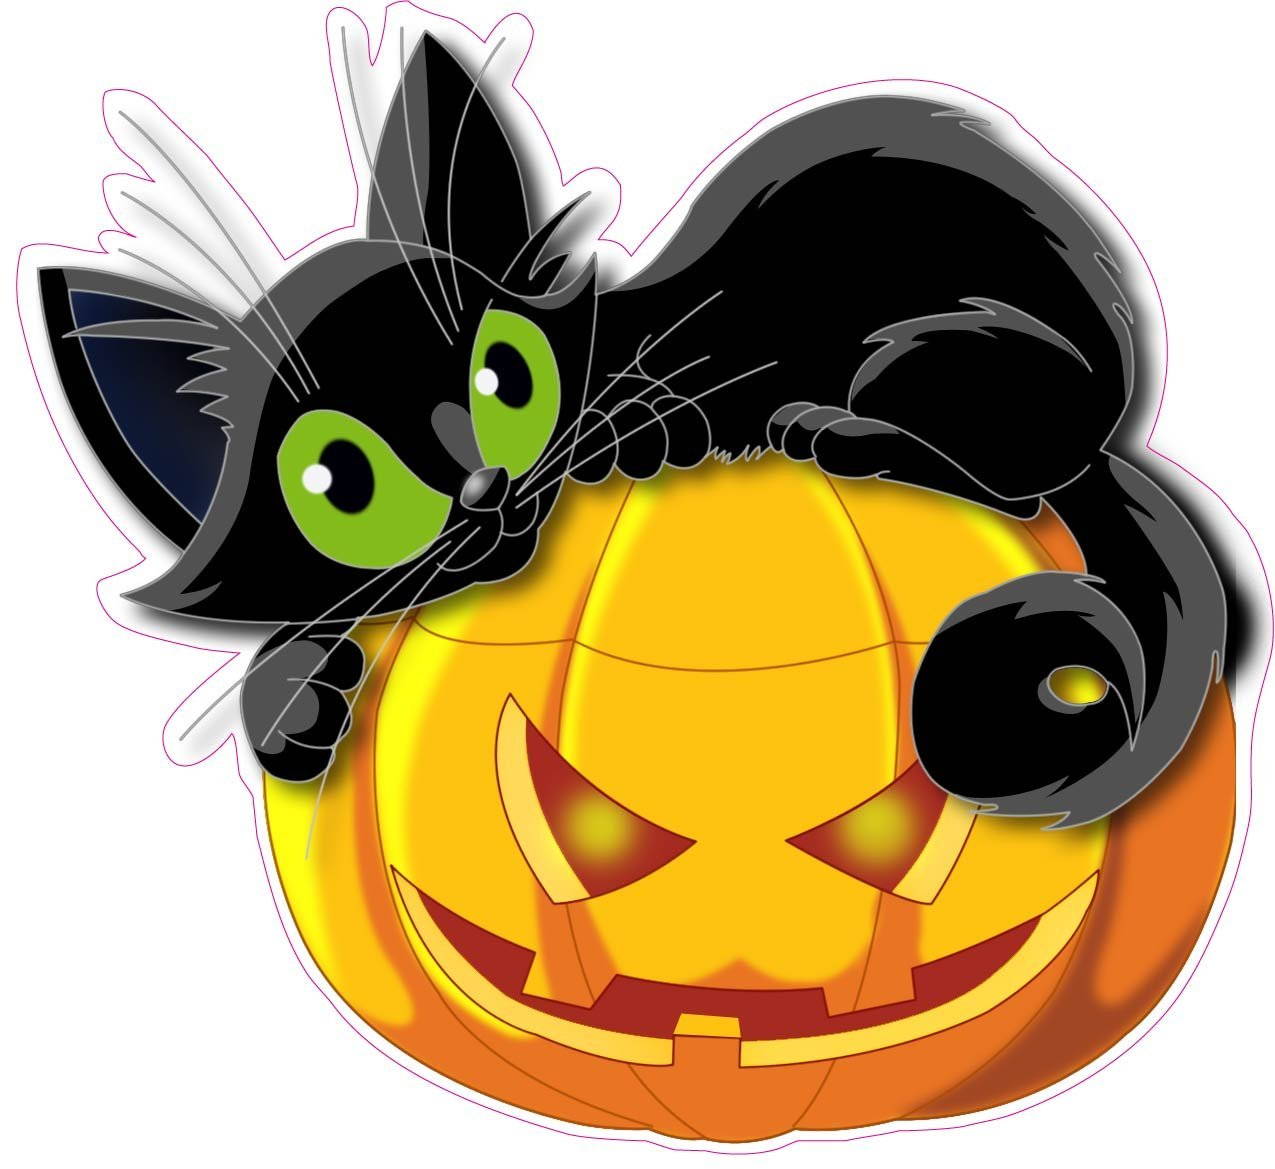 Halloween Pumpkin with Black Cat Wall or Window Decor Decal